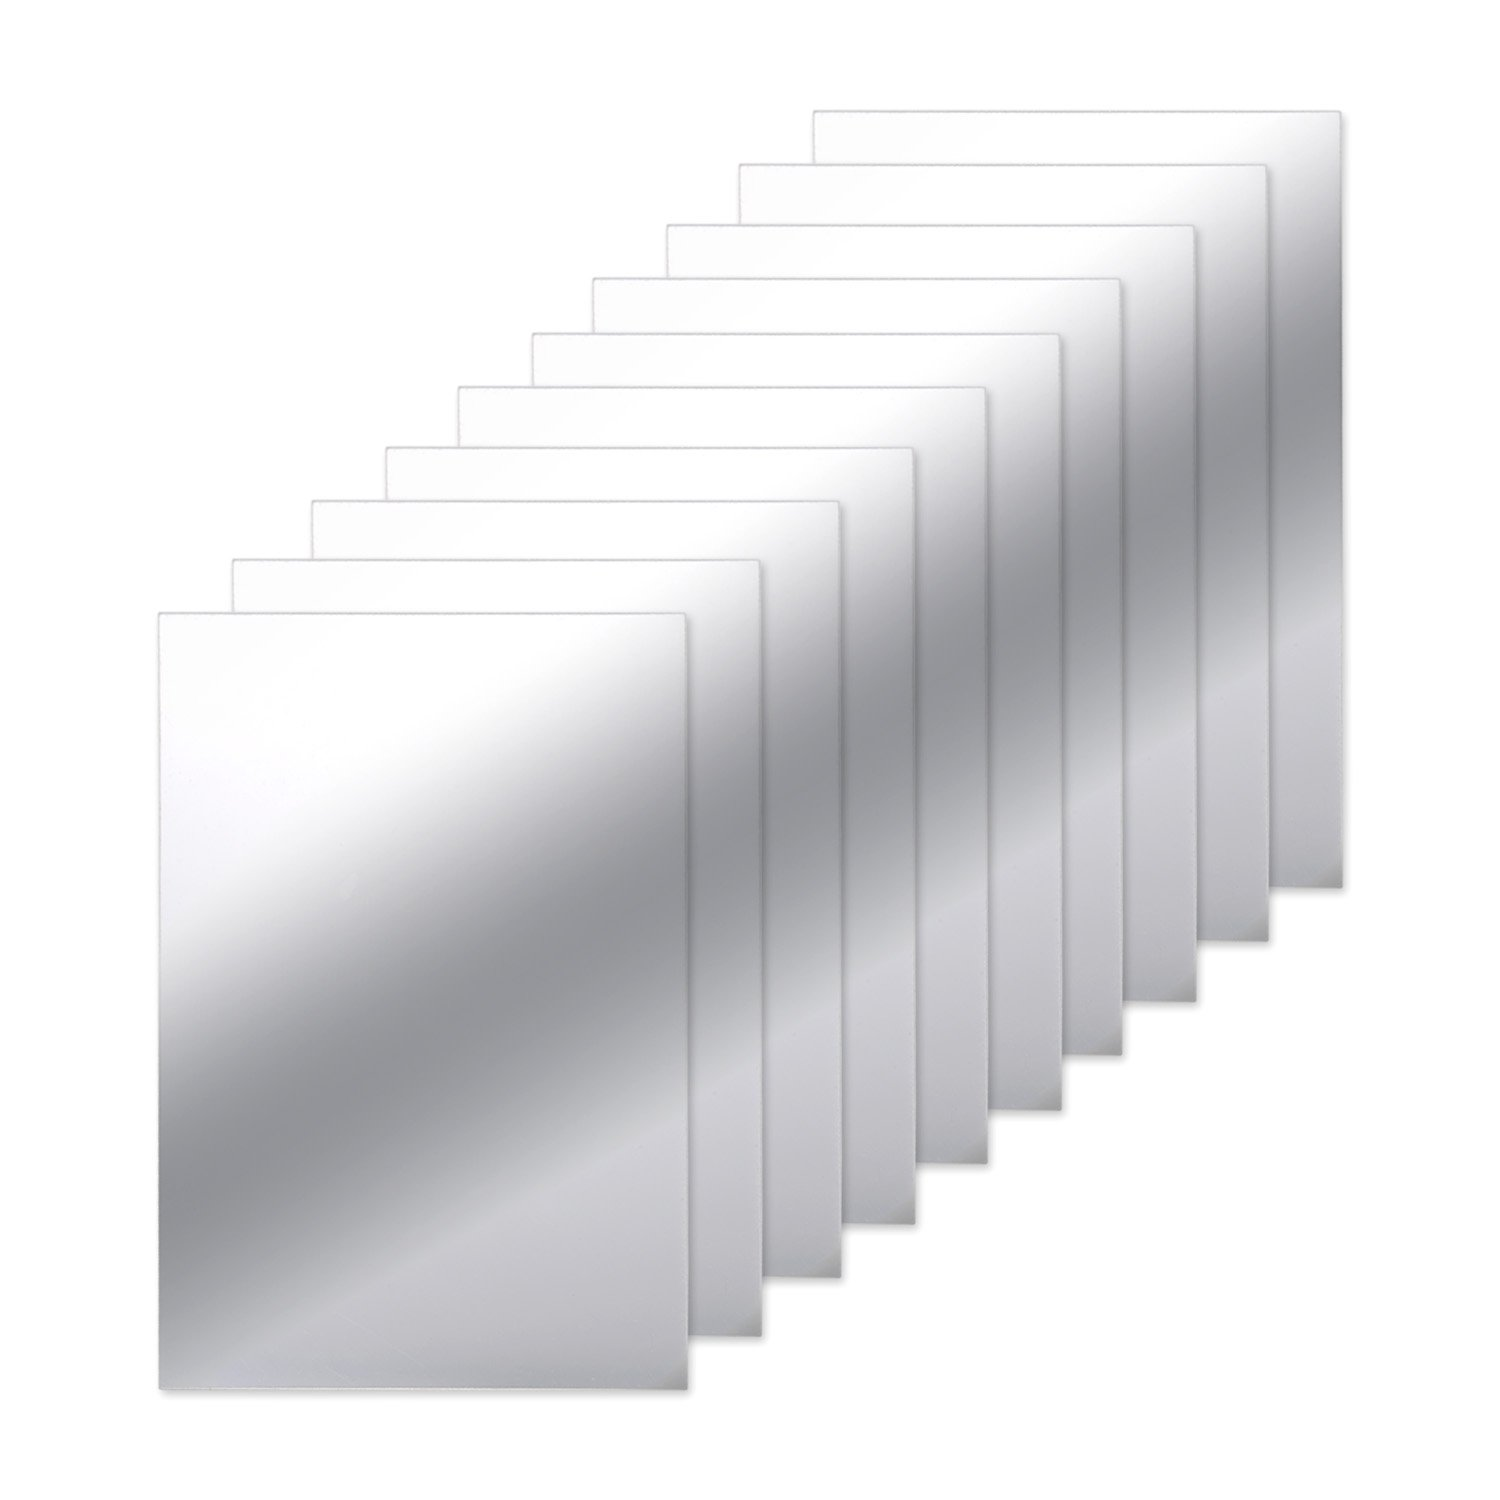 BBTO 10 Pieces Mirror Sheets Self Adhesive Non Glass Mirror Tiles Wall Sticky Mirror, 9 by 6 Inches EXPS034800